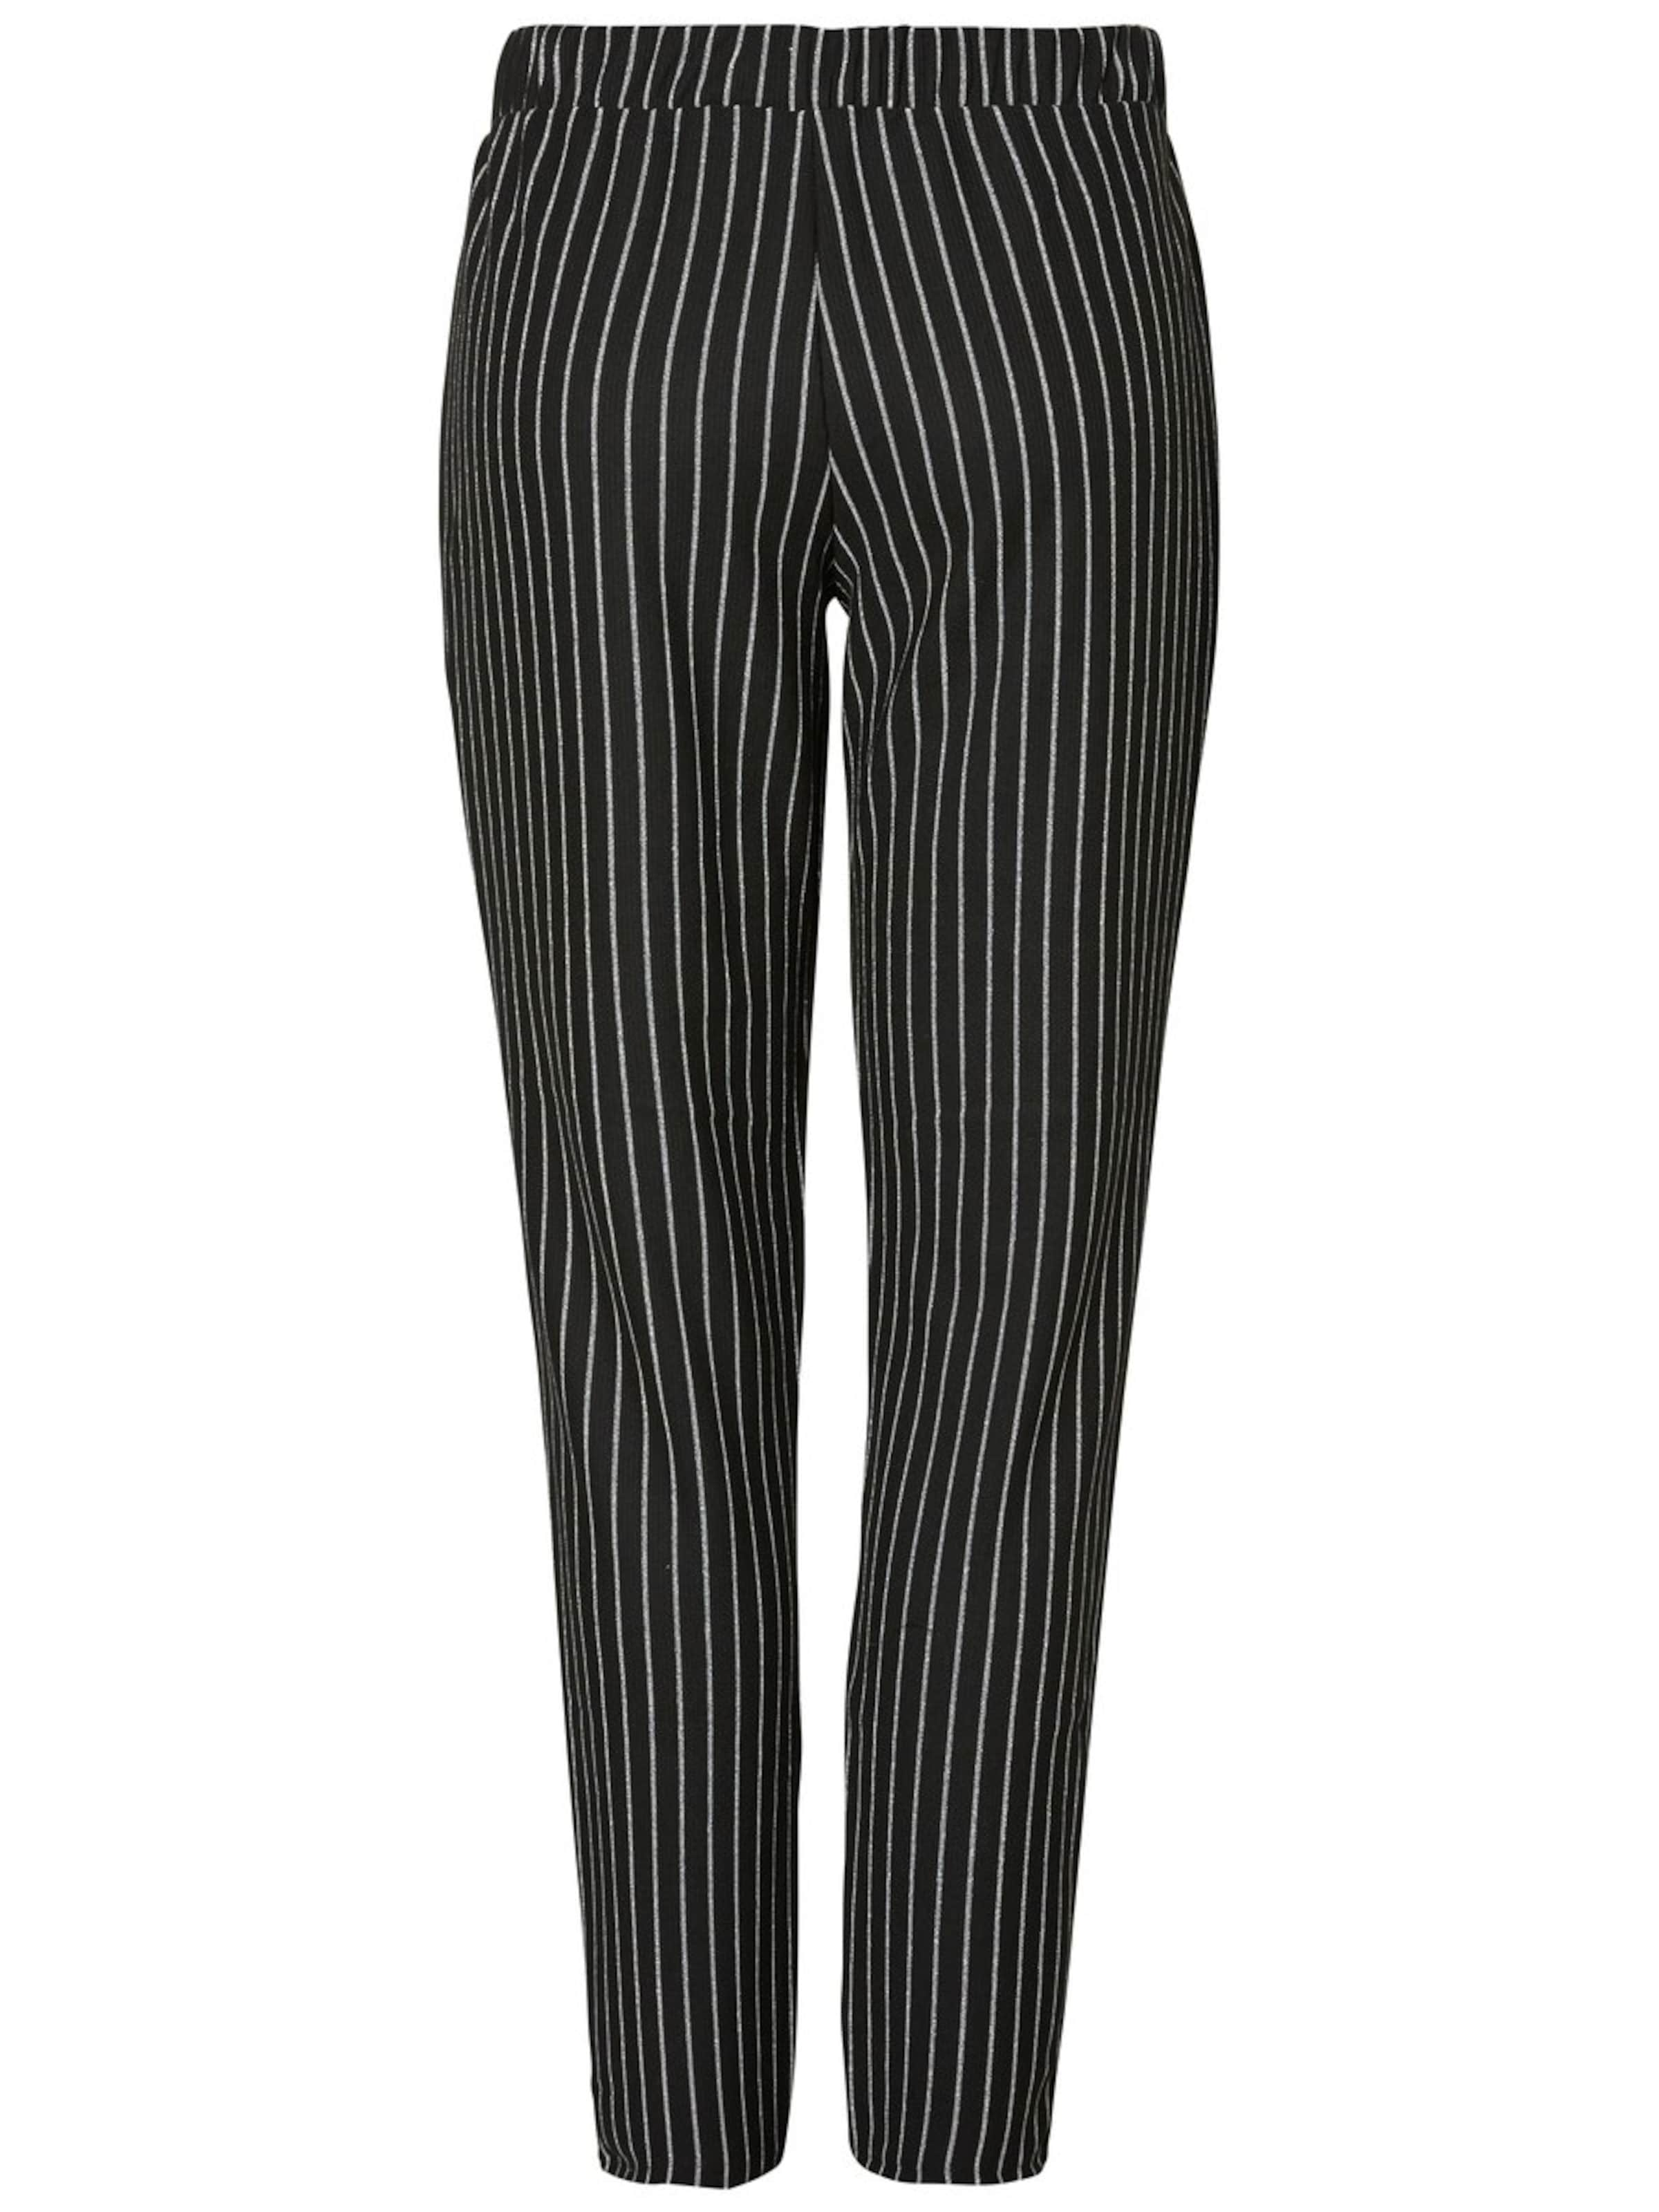 NoirBlanc En Pieces NoirBlanc En Pieces Pantalon En En NoirBlanc Pieces Pantalon Pieces Pantalon Pantalon oxdCBe